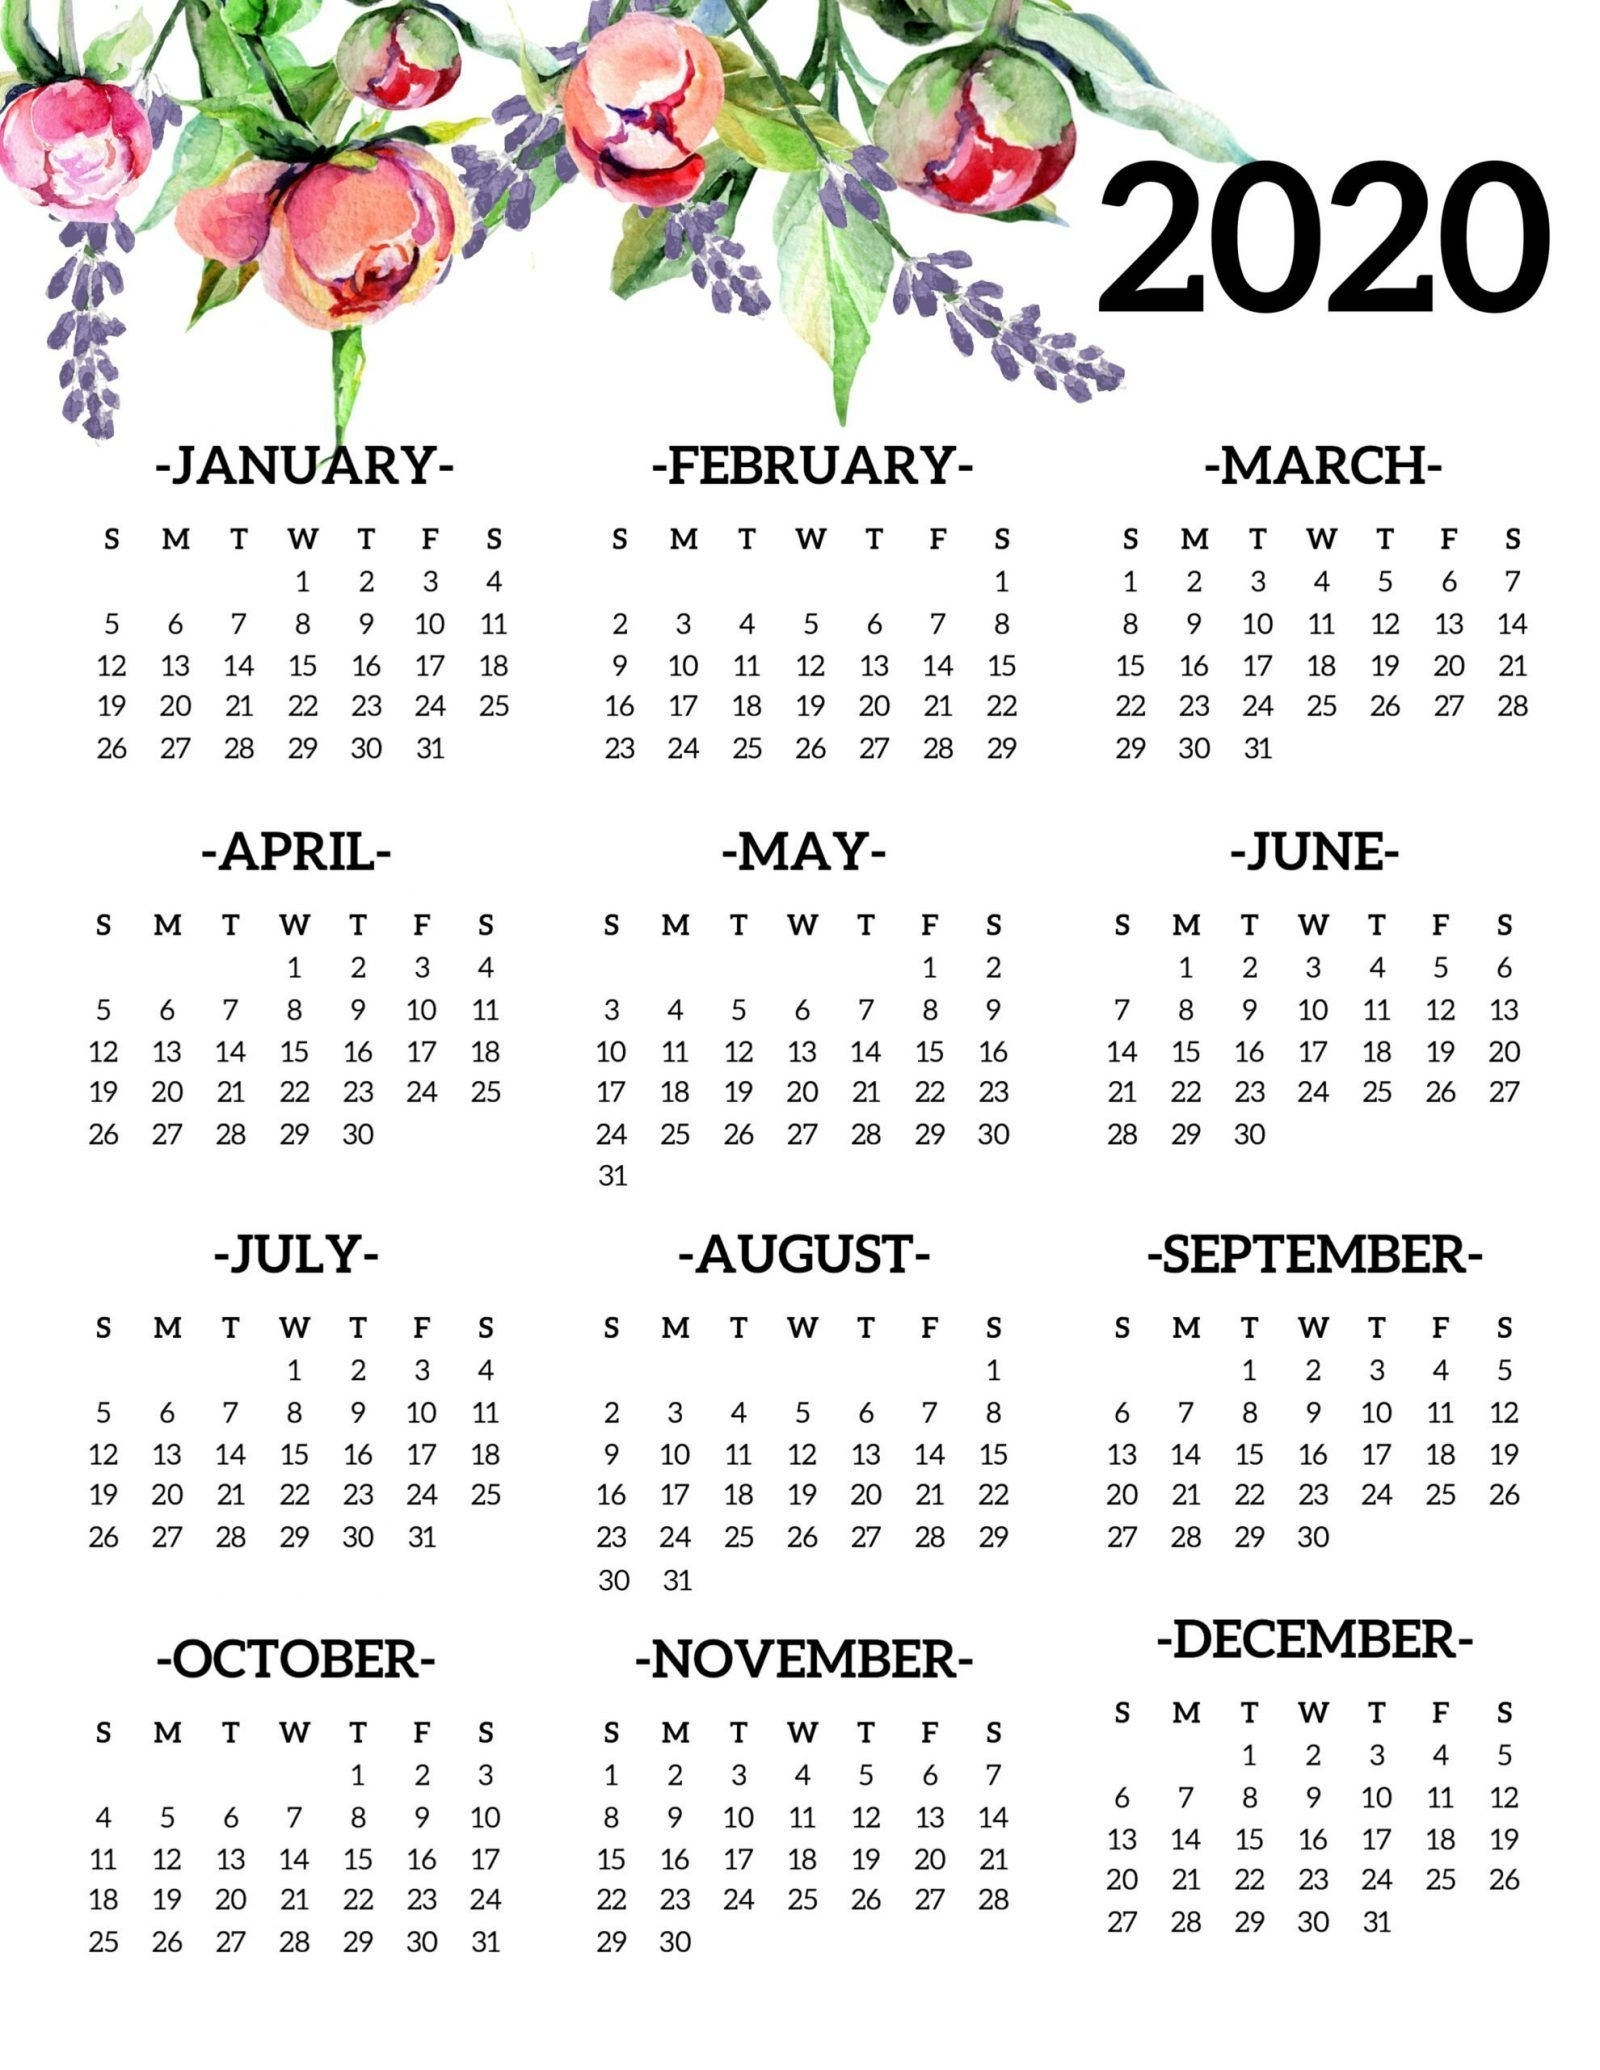 20 Free Printable Calendars For 2020 - Yesmissy In 2020 pertaining to Year At Glance For 2020 To Print